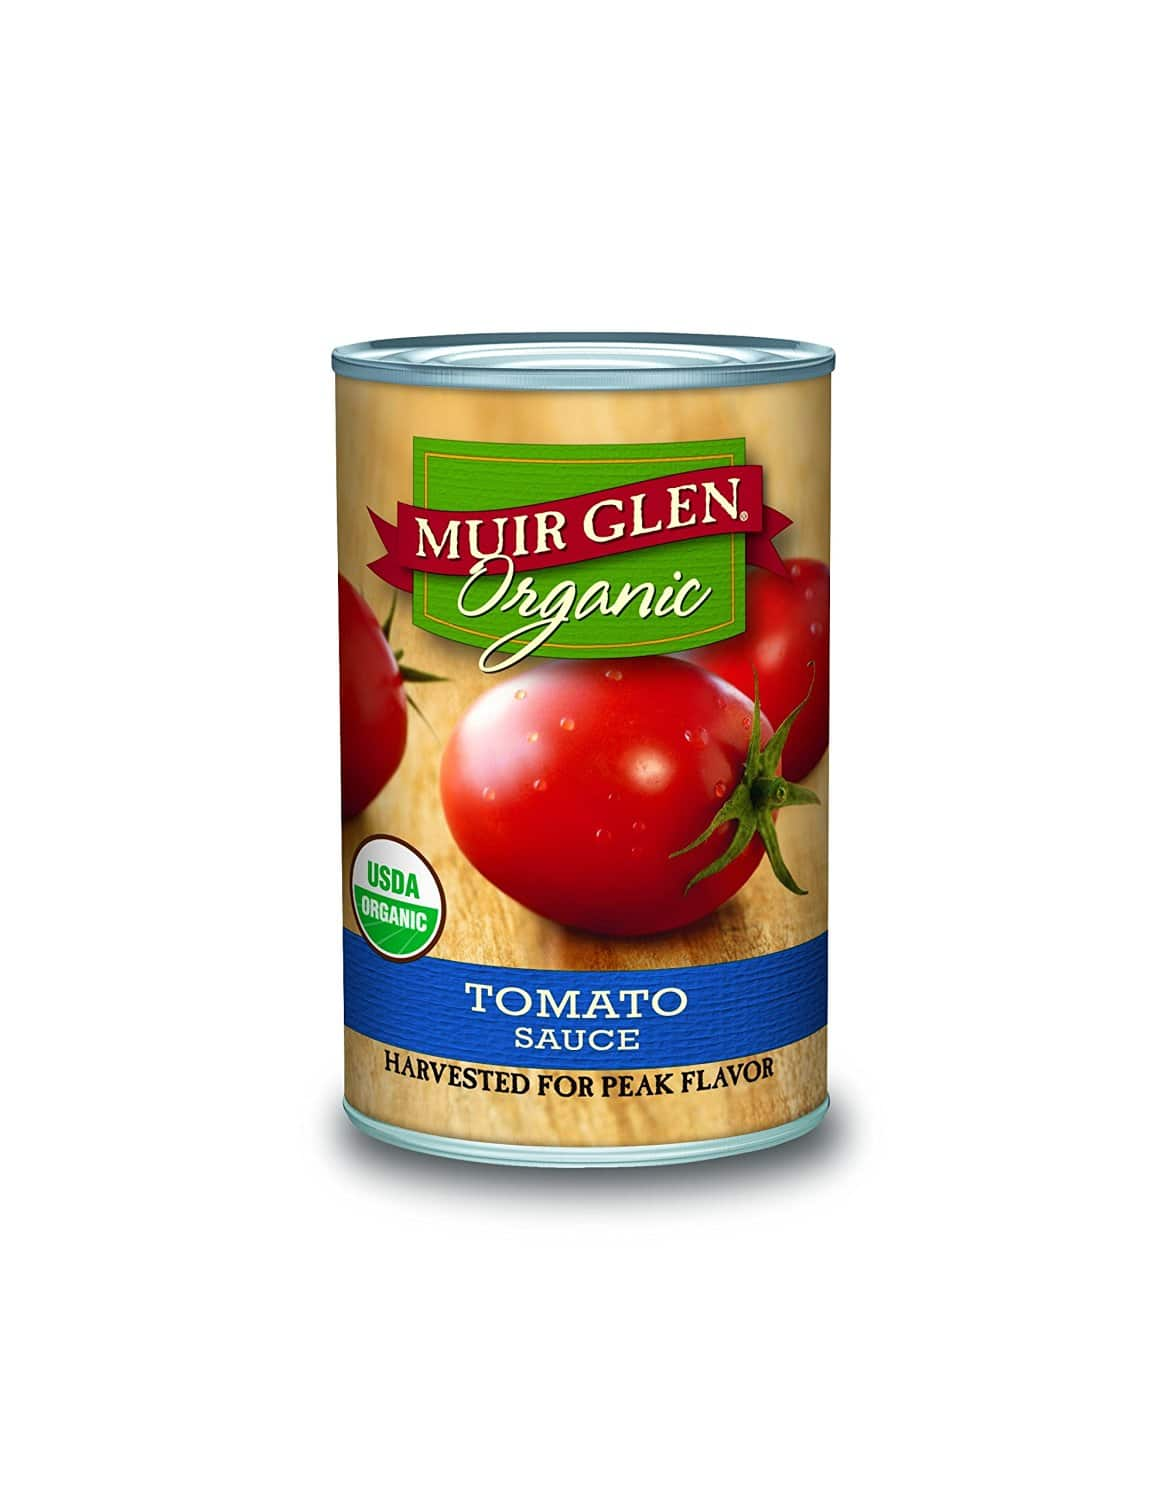 12-Pack of 15oz Cans Muir Glen Organic Tomato Sauce - $11.40 - Prime Members Only - Amazon S&S